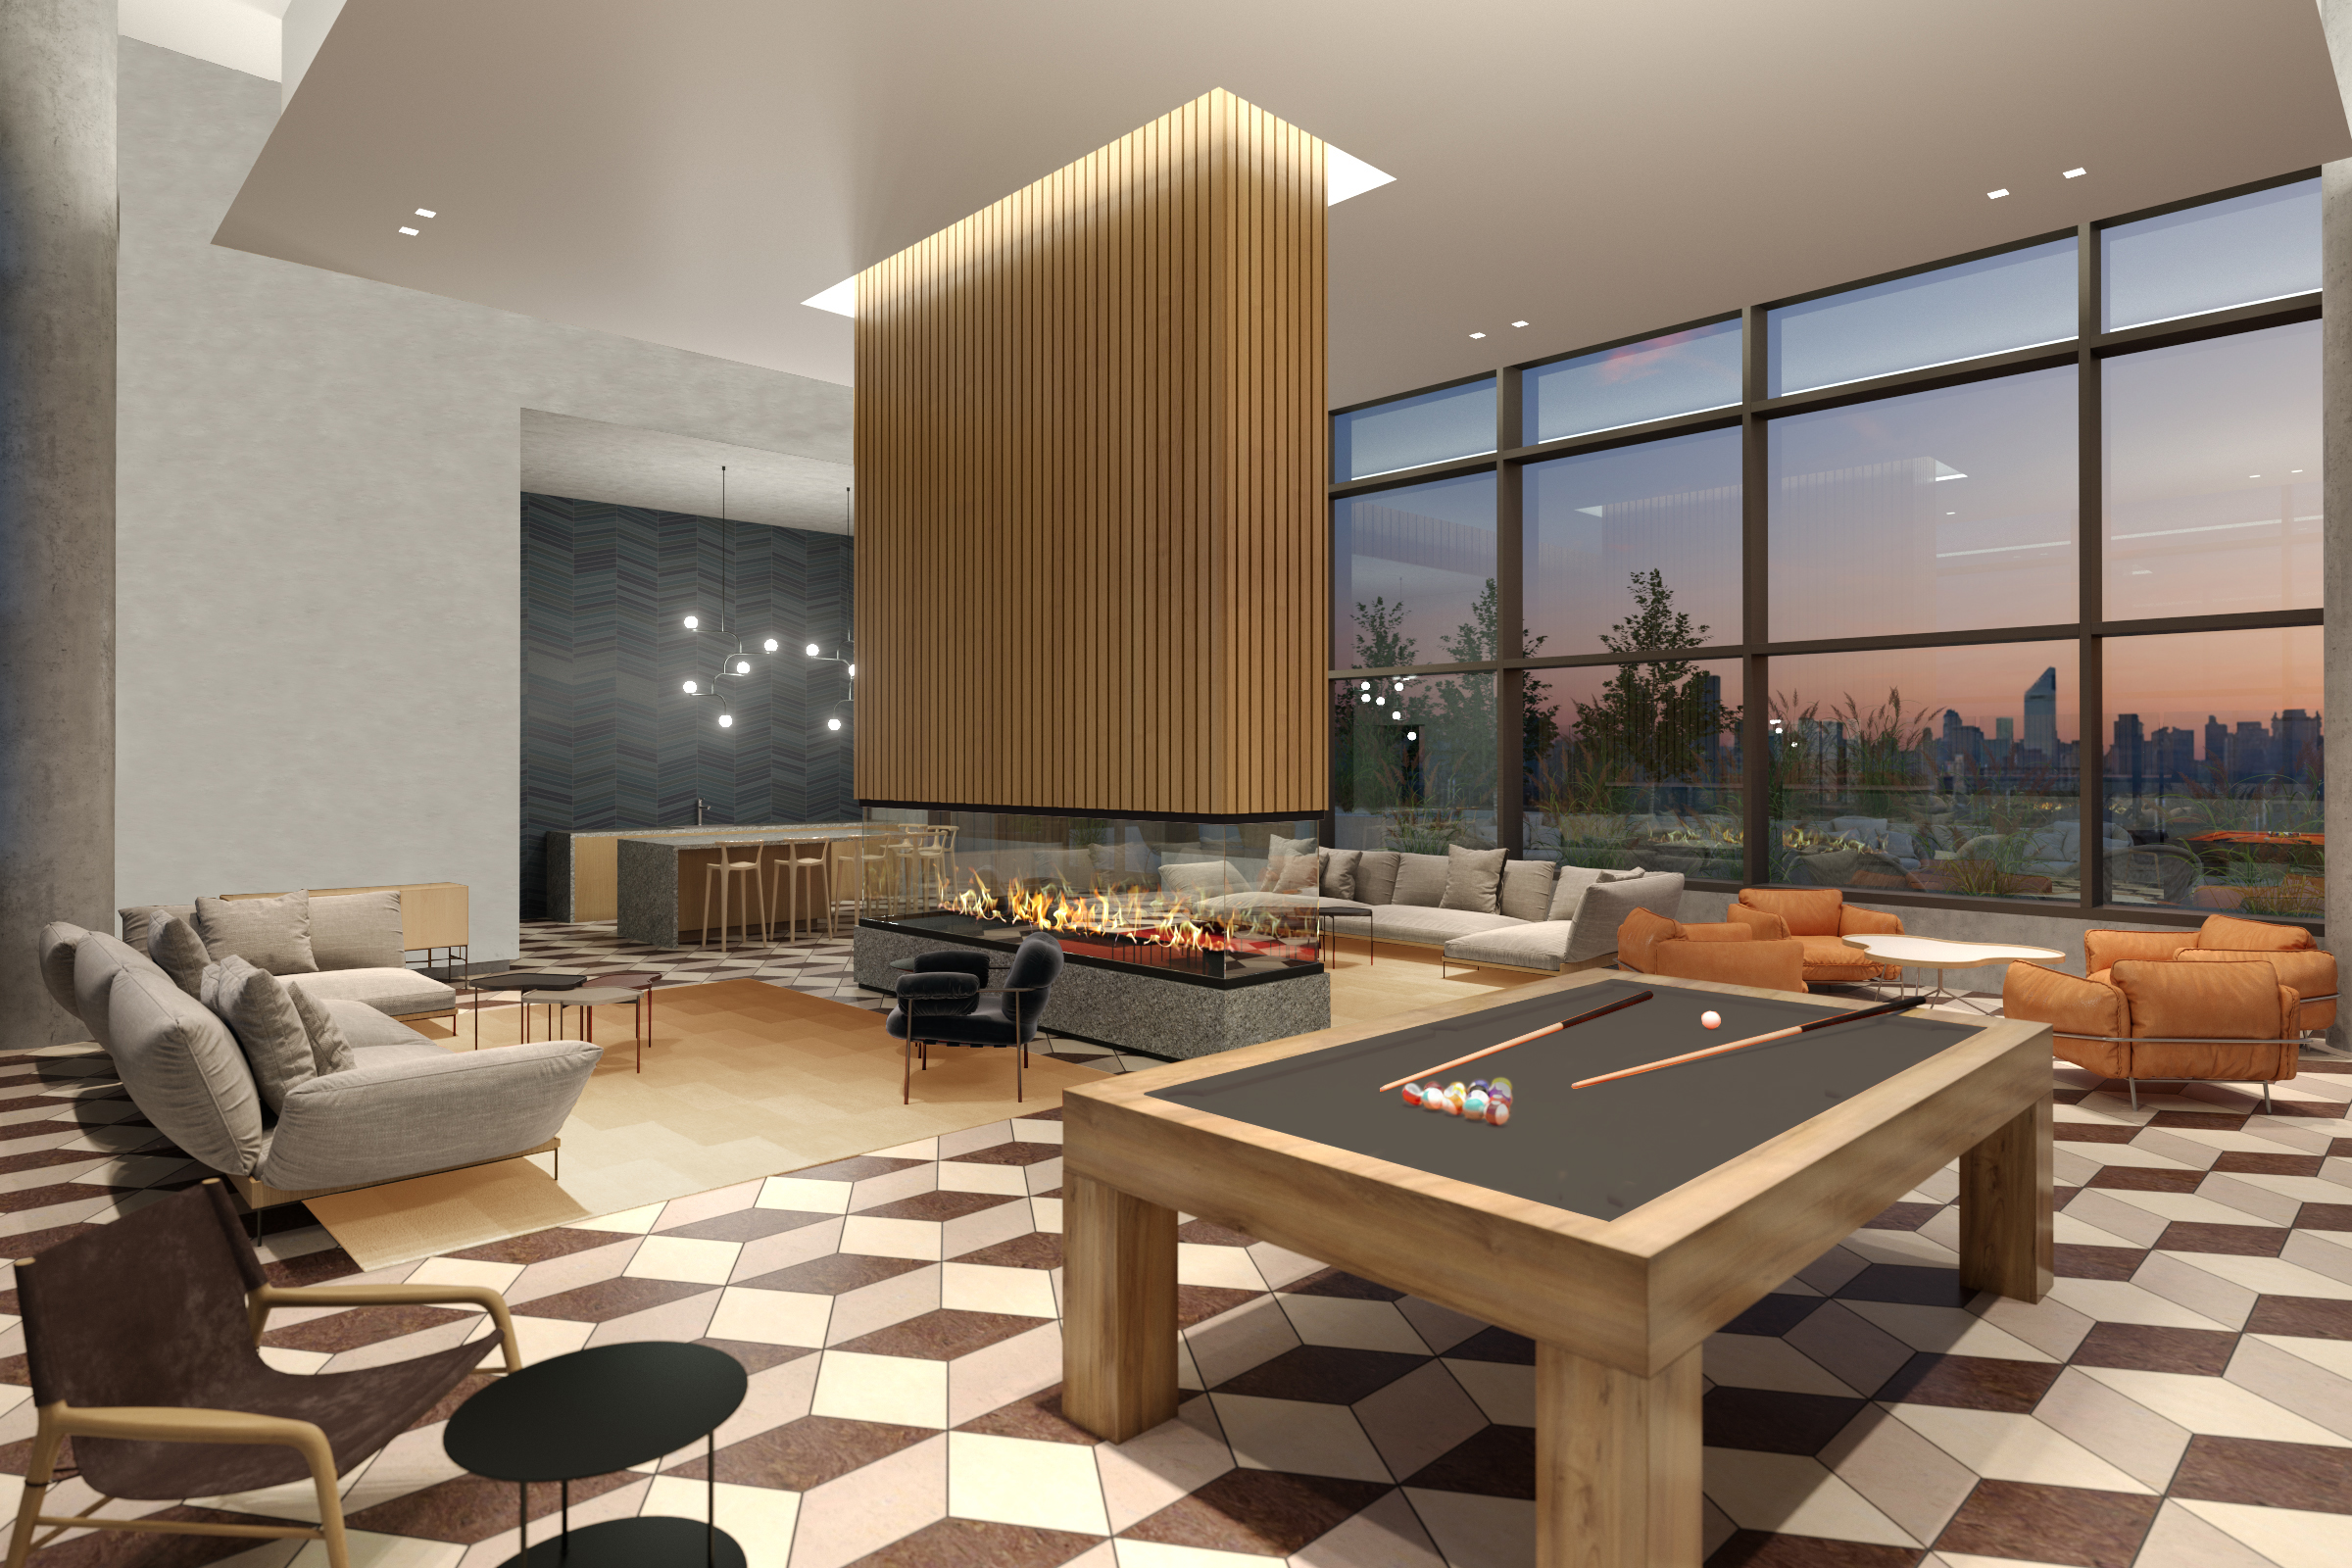 Co living expands to long island city with ollies newest new york project